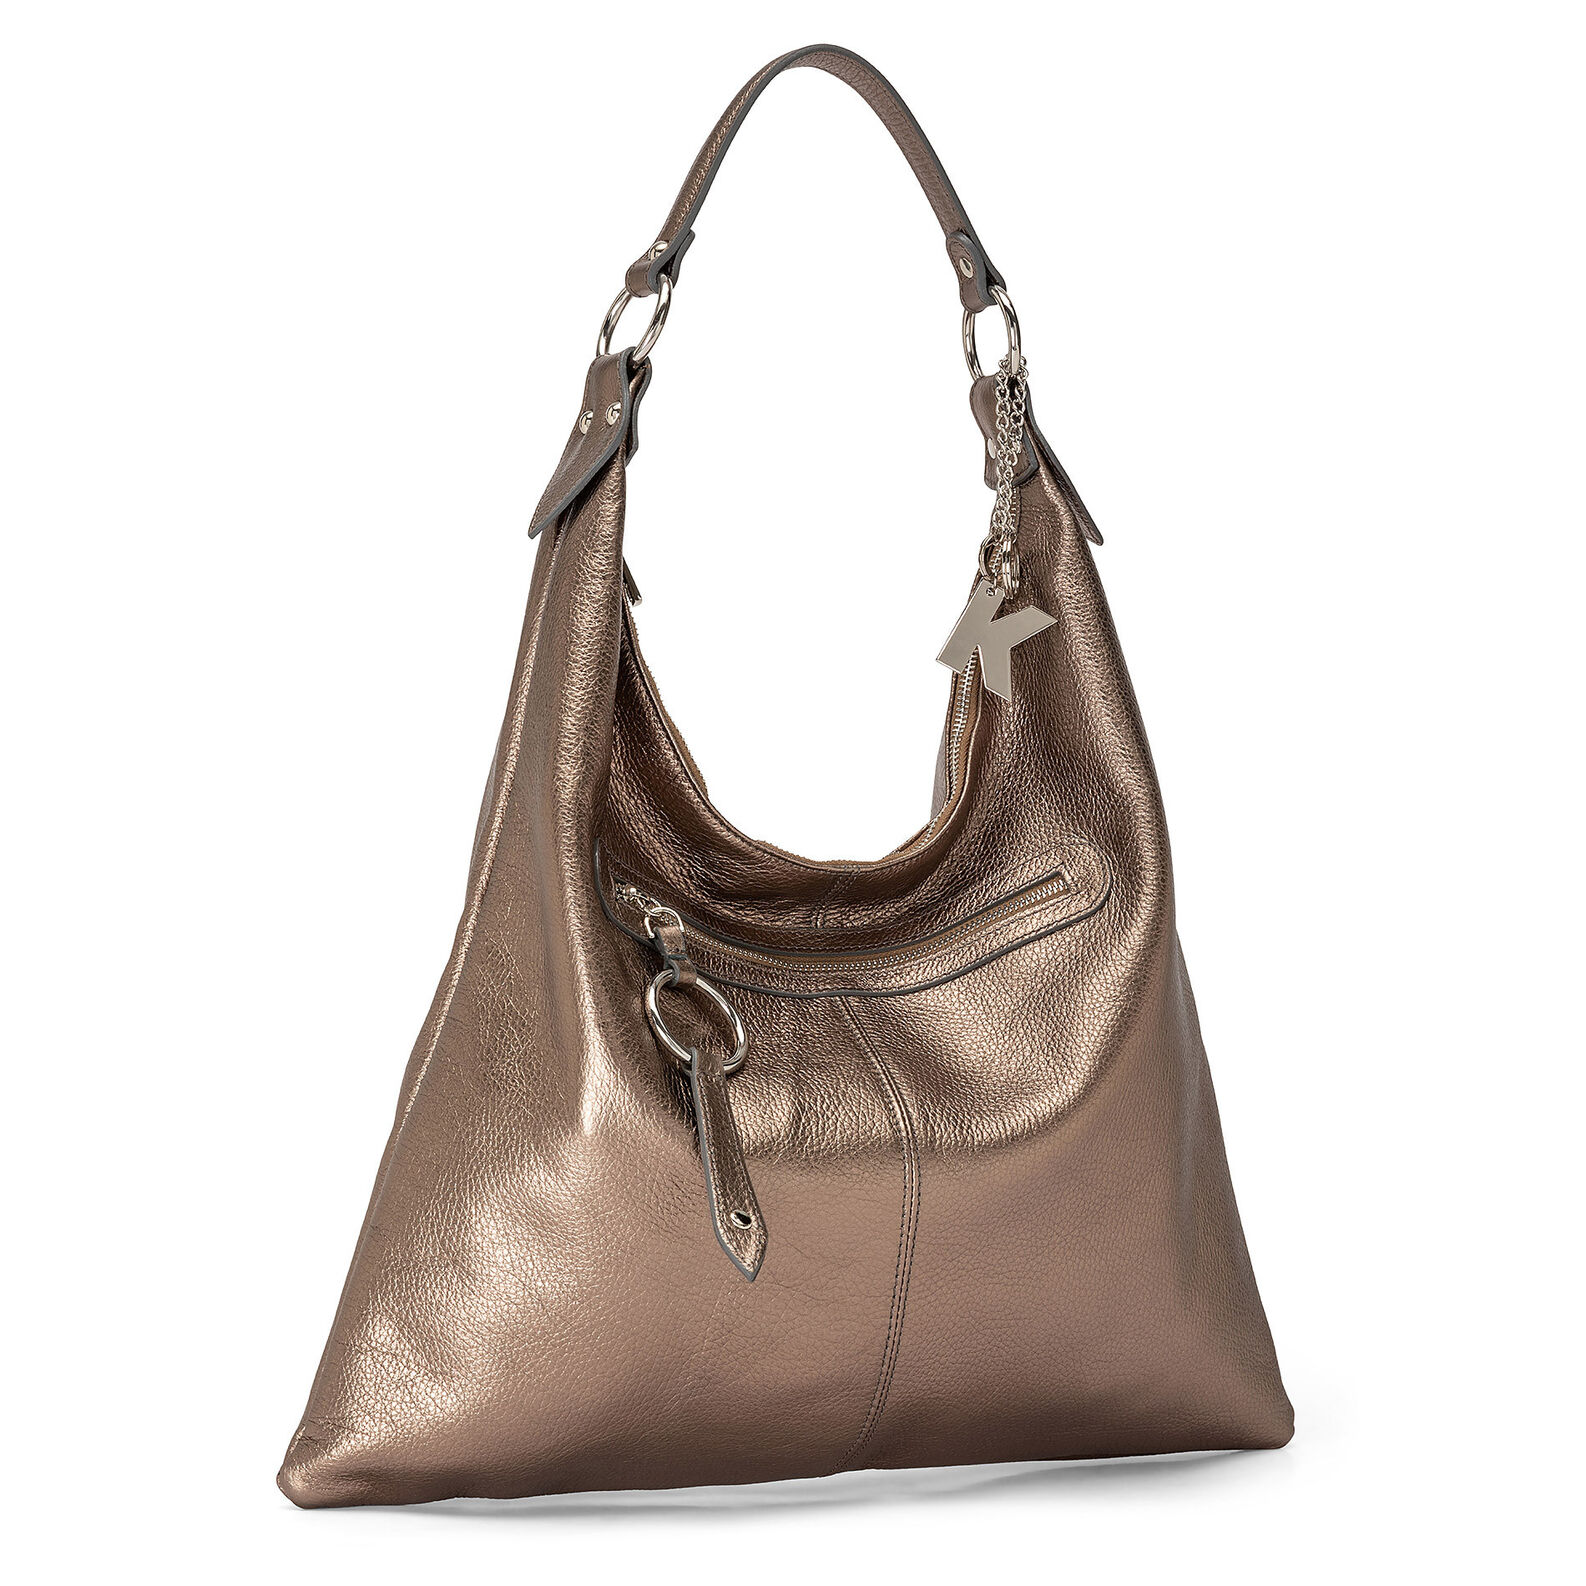 Koan genuine leather bag